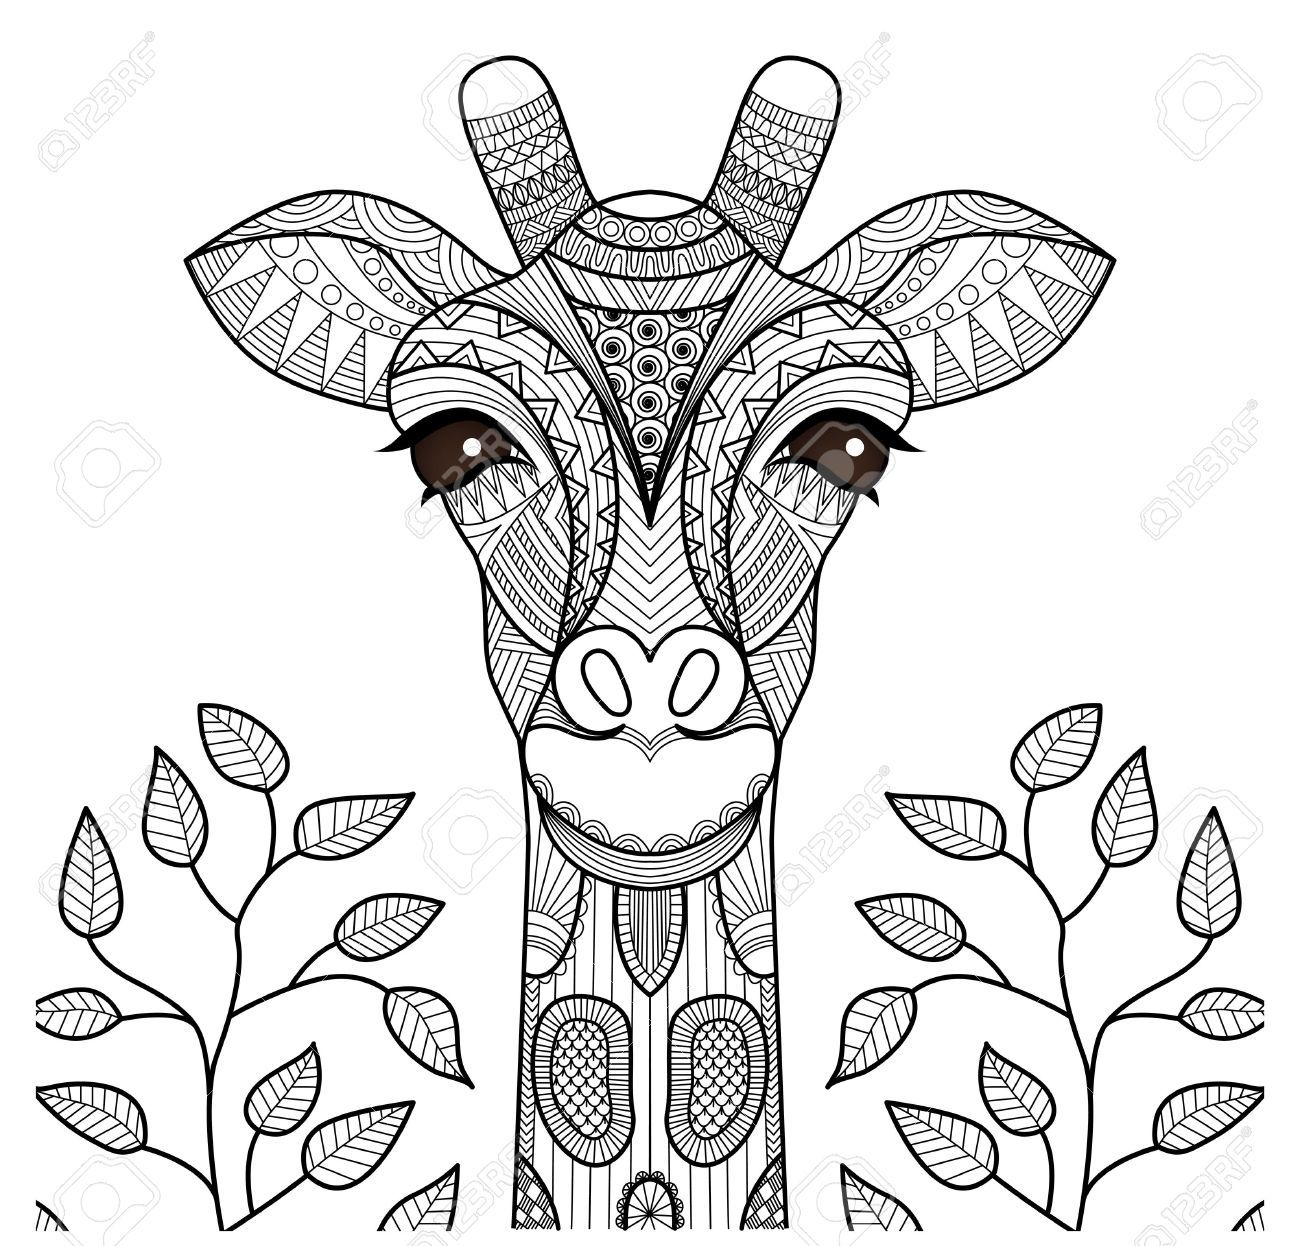 1300x1246 Zentangle Giraffe Head For Coloring Page, Shirt Design And So